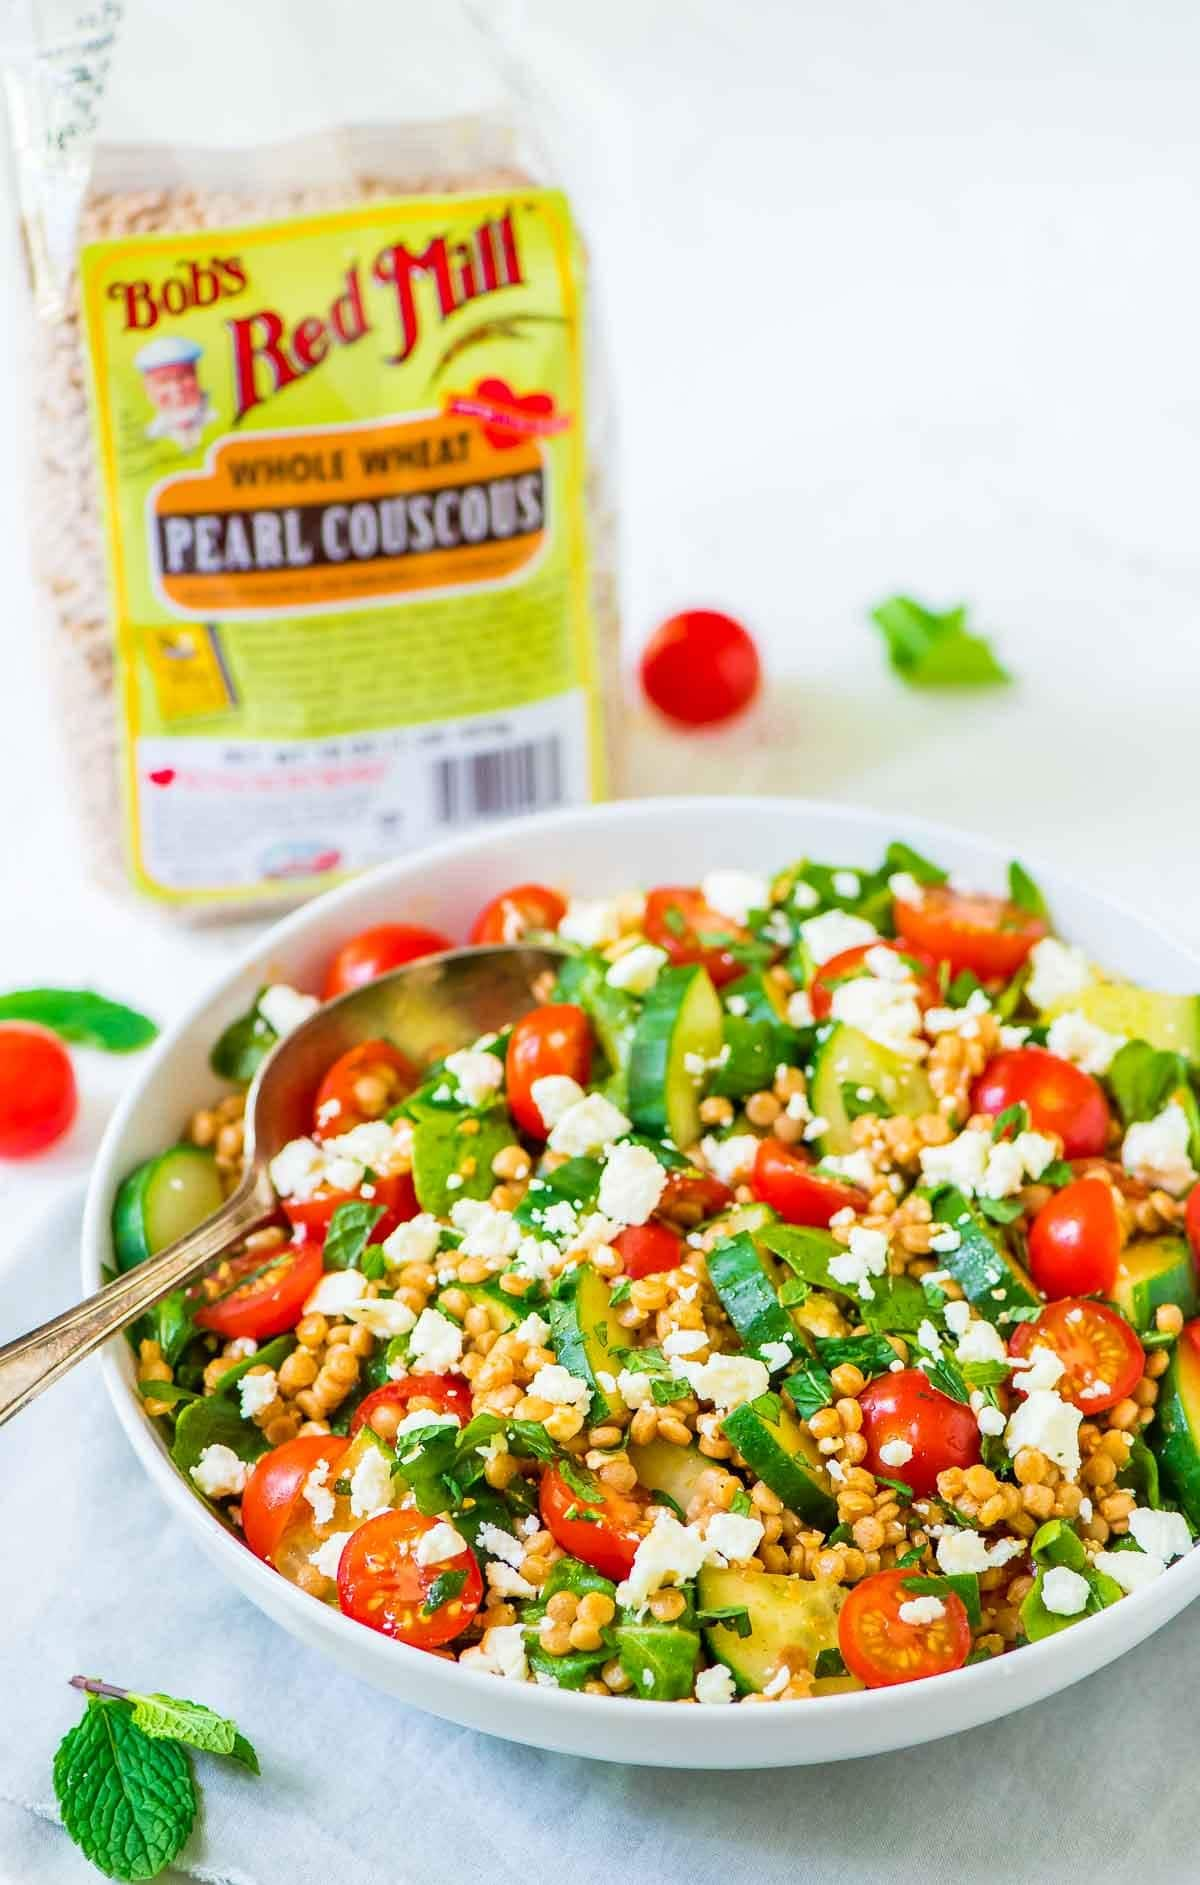 Tomato, Cucumber, and Feta Pearl Couscous Salad in a white bowl, with a bag of Bob's Red Mill pearl couscous behind it